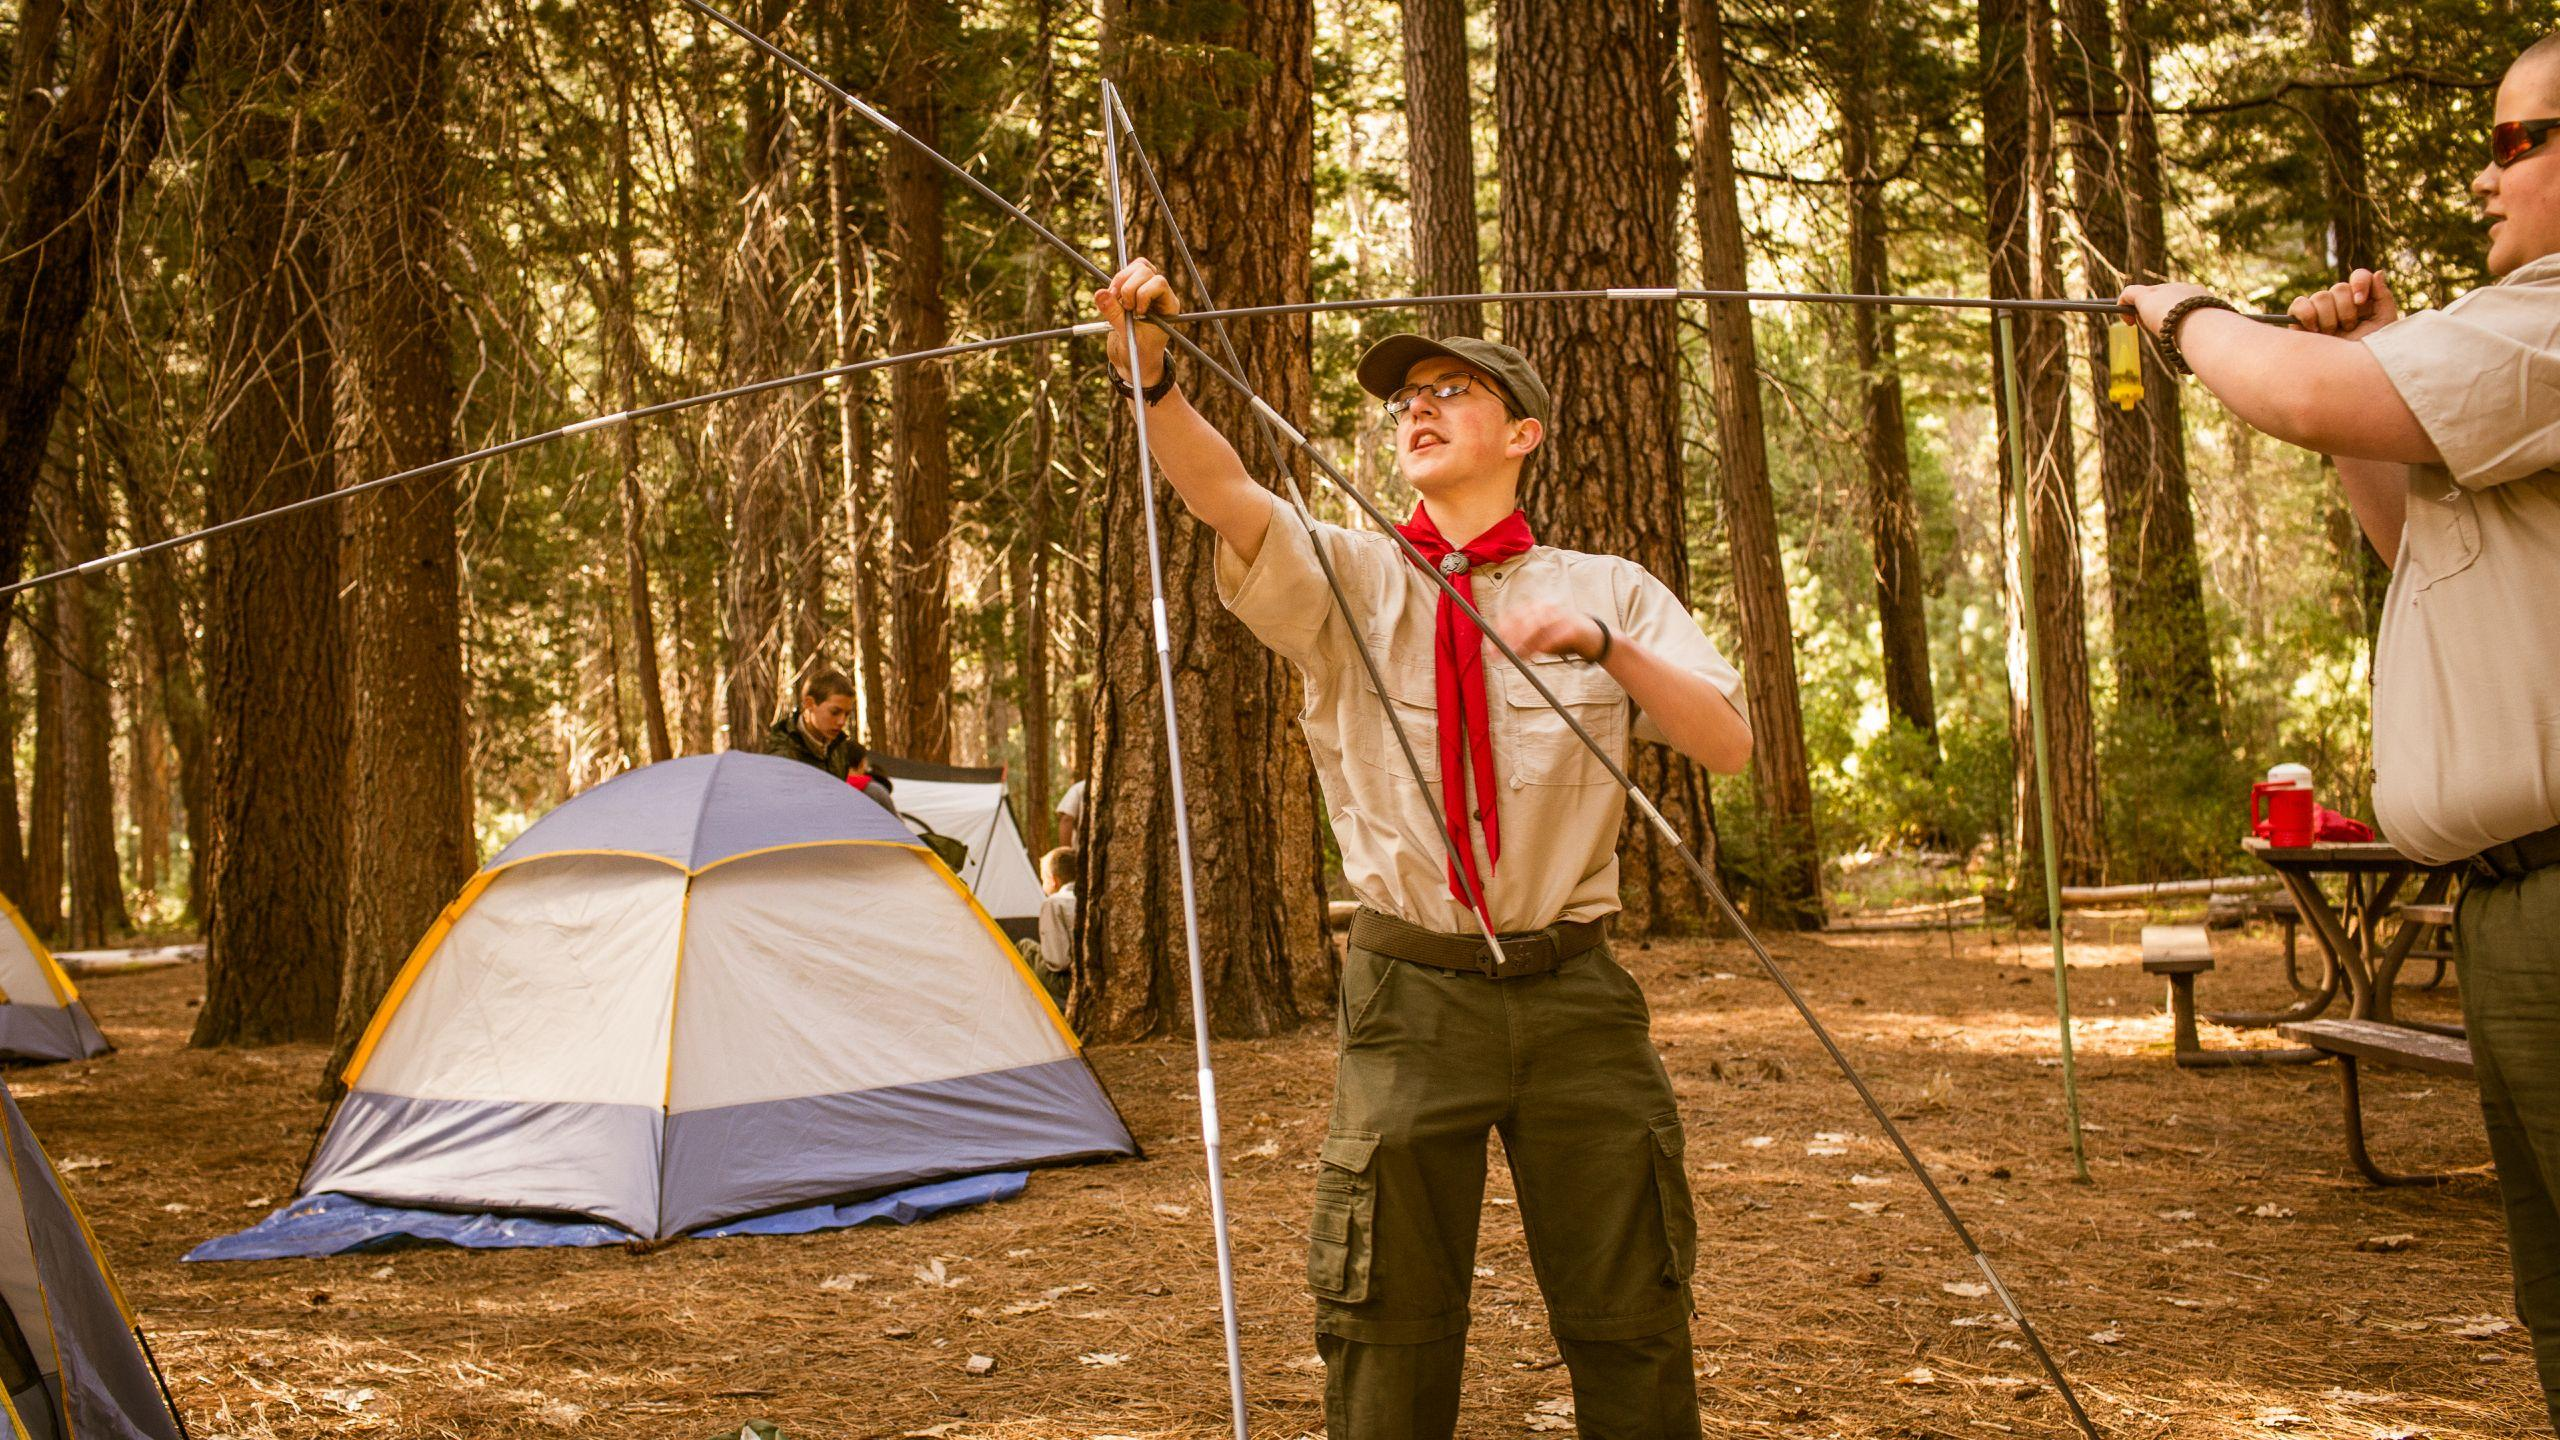 Boy Scouts Wallpapers (38 Wallpapers) – Adorable Wallpapers